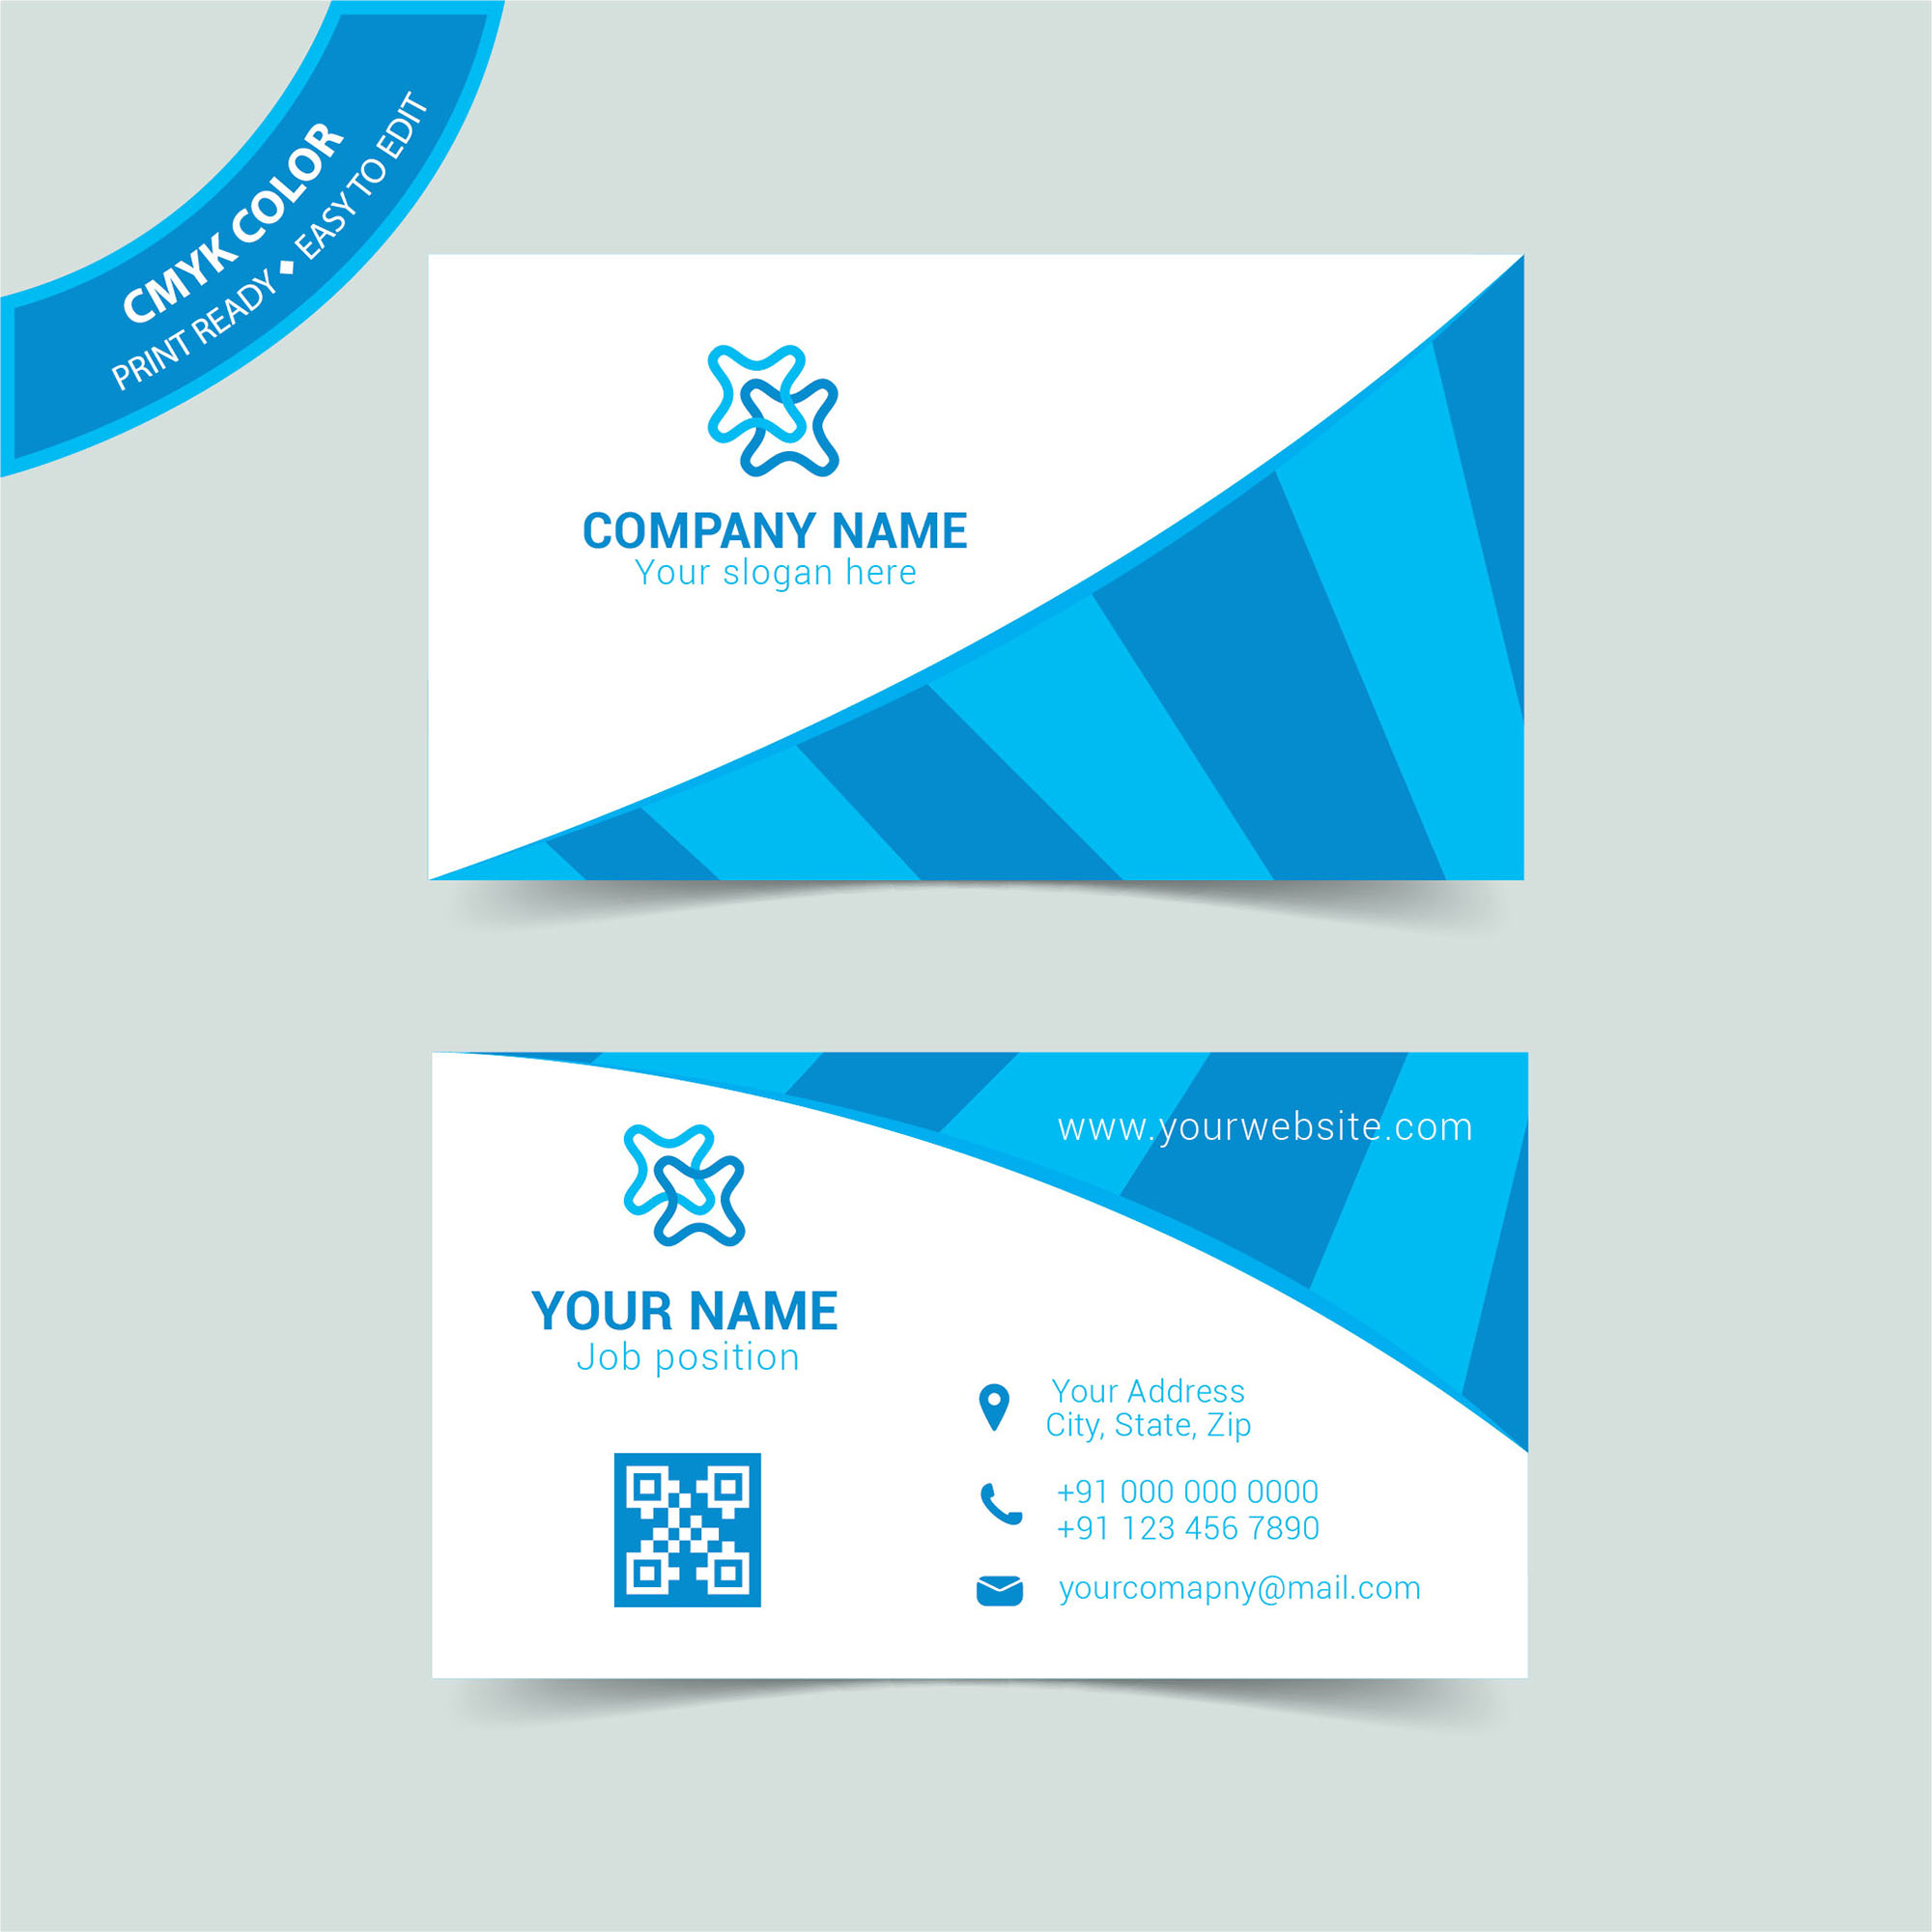 Professional business card templates free download wisxi business card business cards business card design business card template design templates fbccfo Gallery